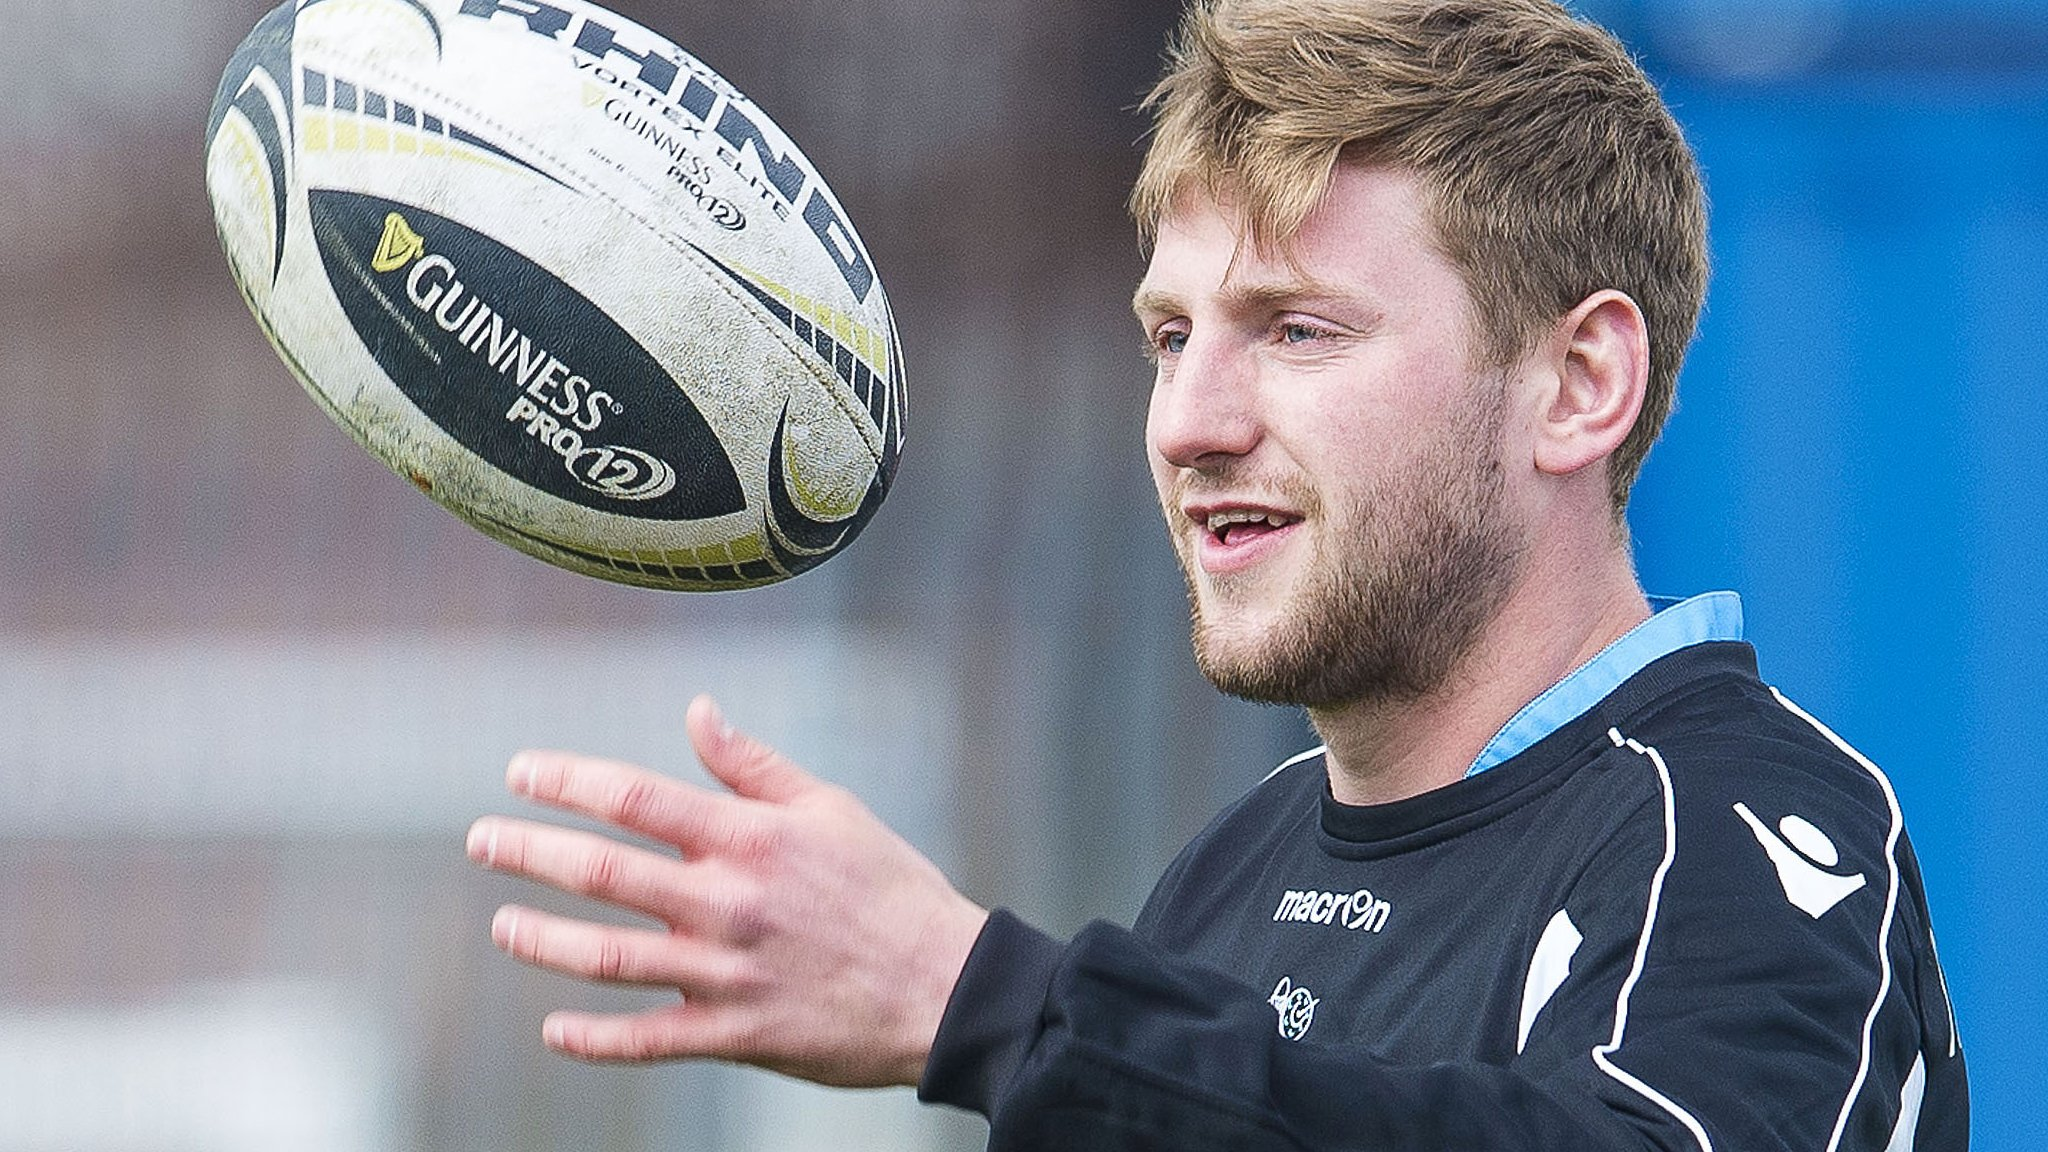 Glasgow's Russell feared for career after head injury